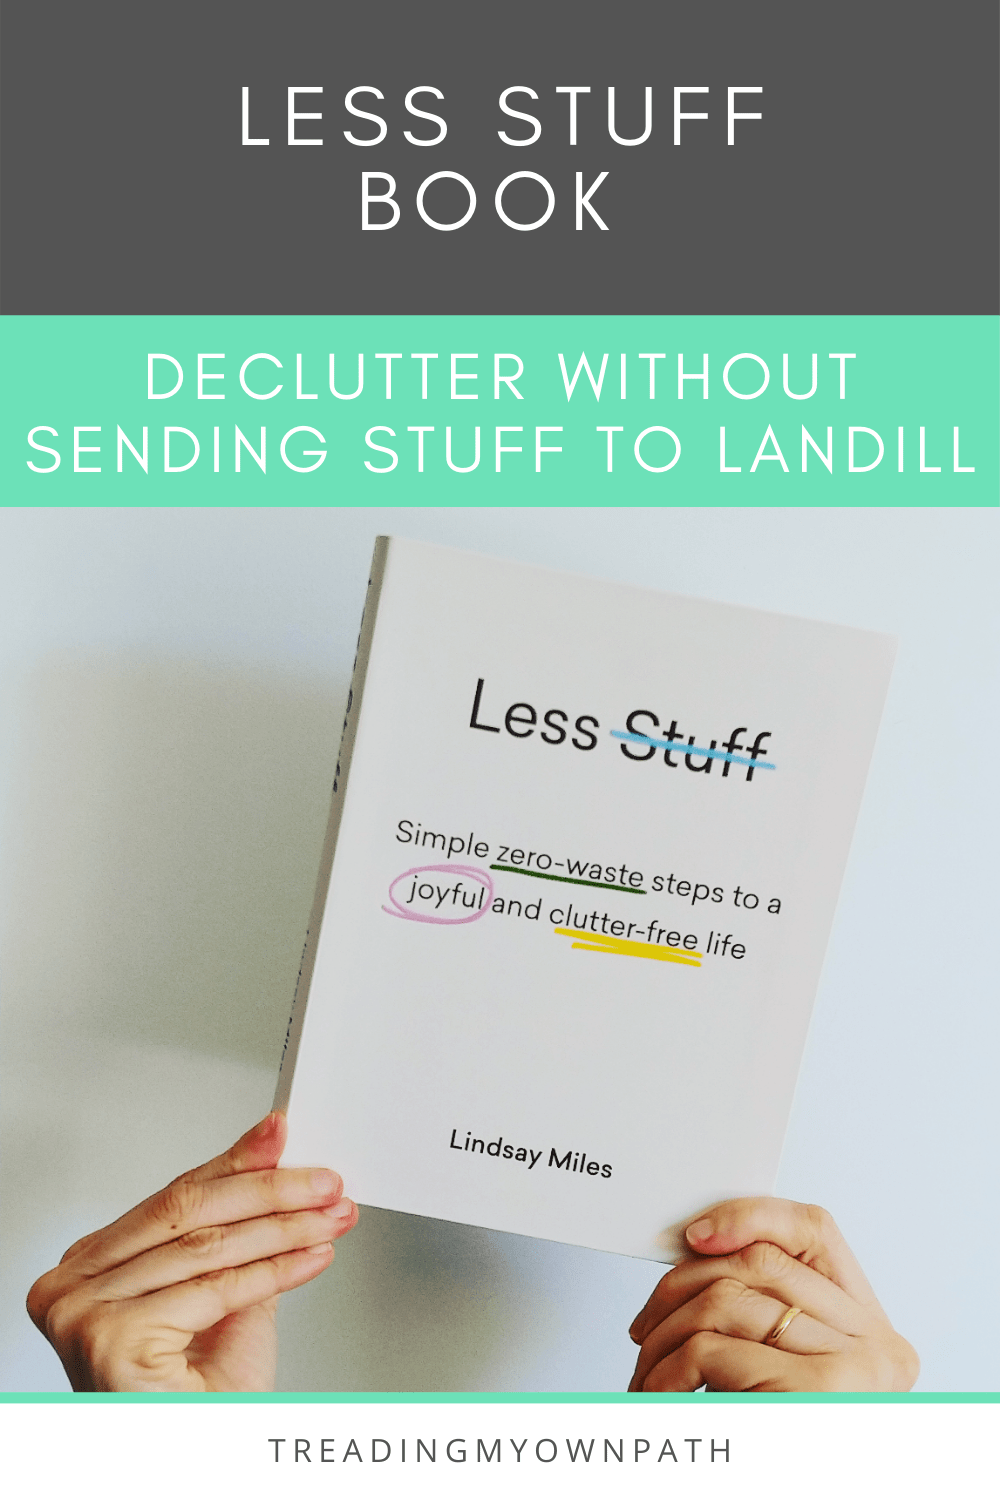 Introducing Less Stuff: A book about changing our relationship with our things, with a zero waste perspective